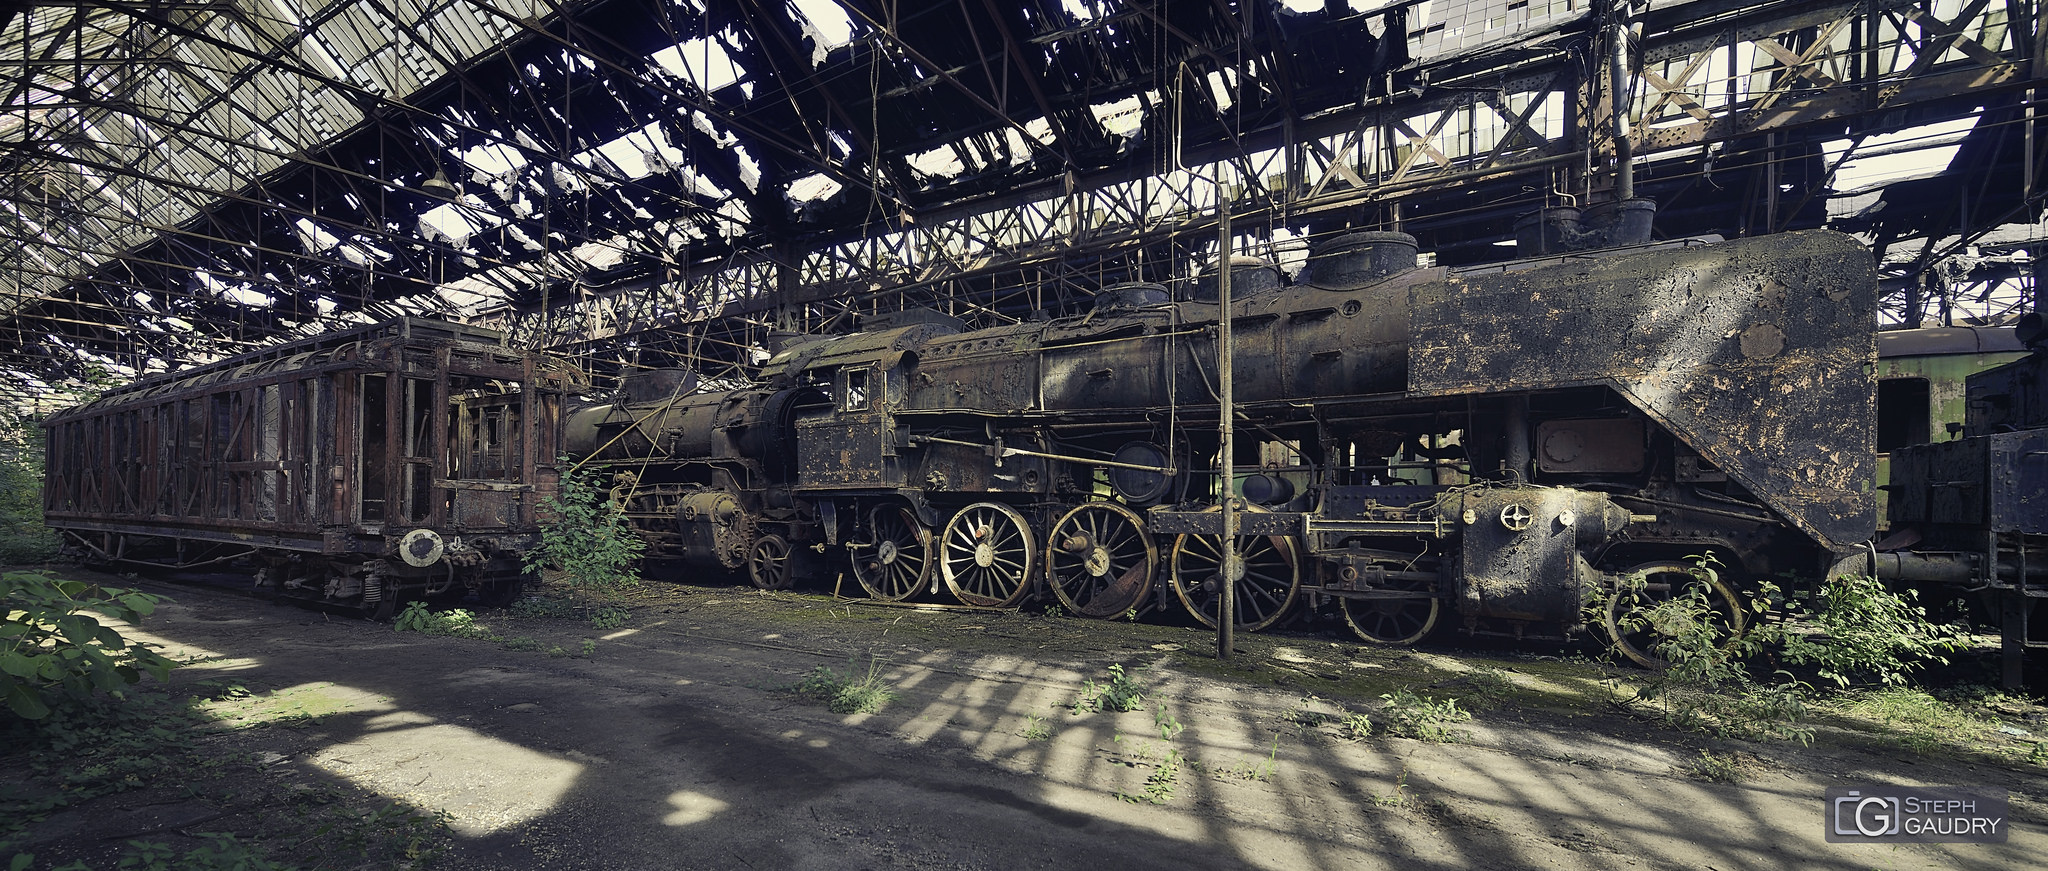 Abandoned steam train